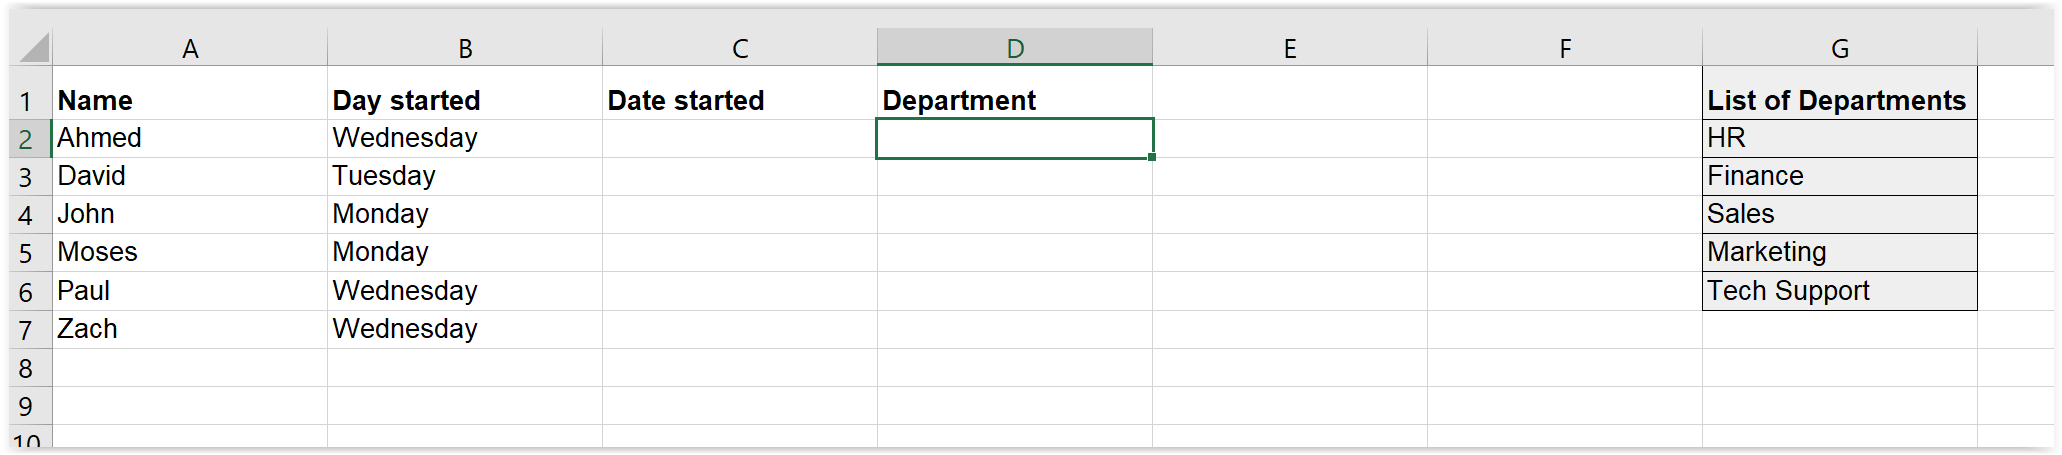 Pre typed list for drop-down